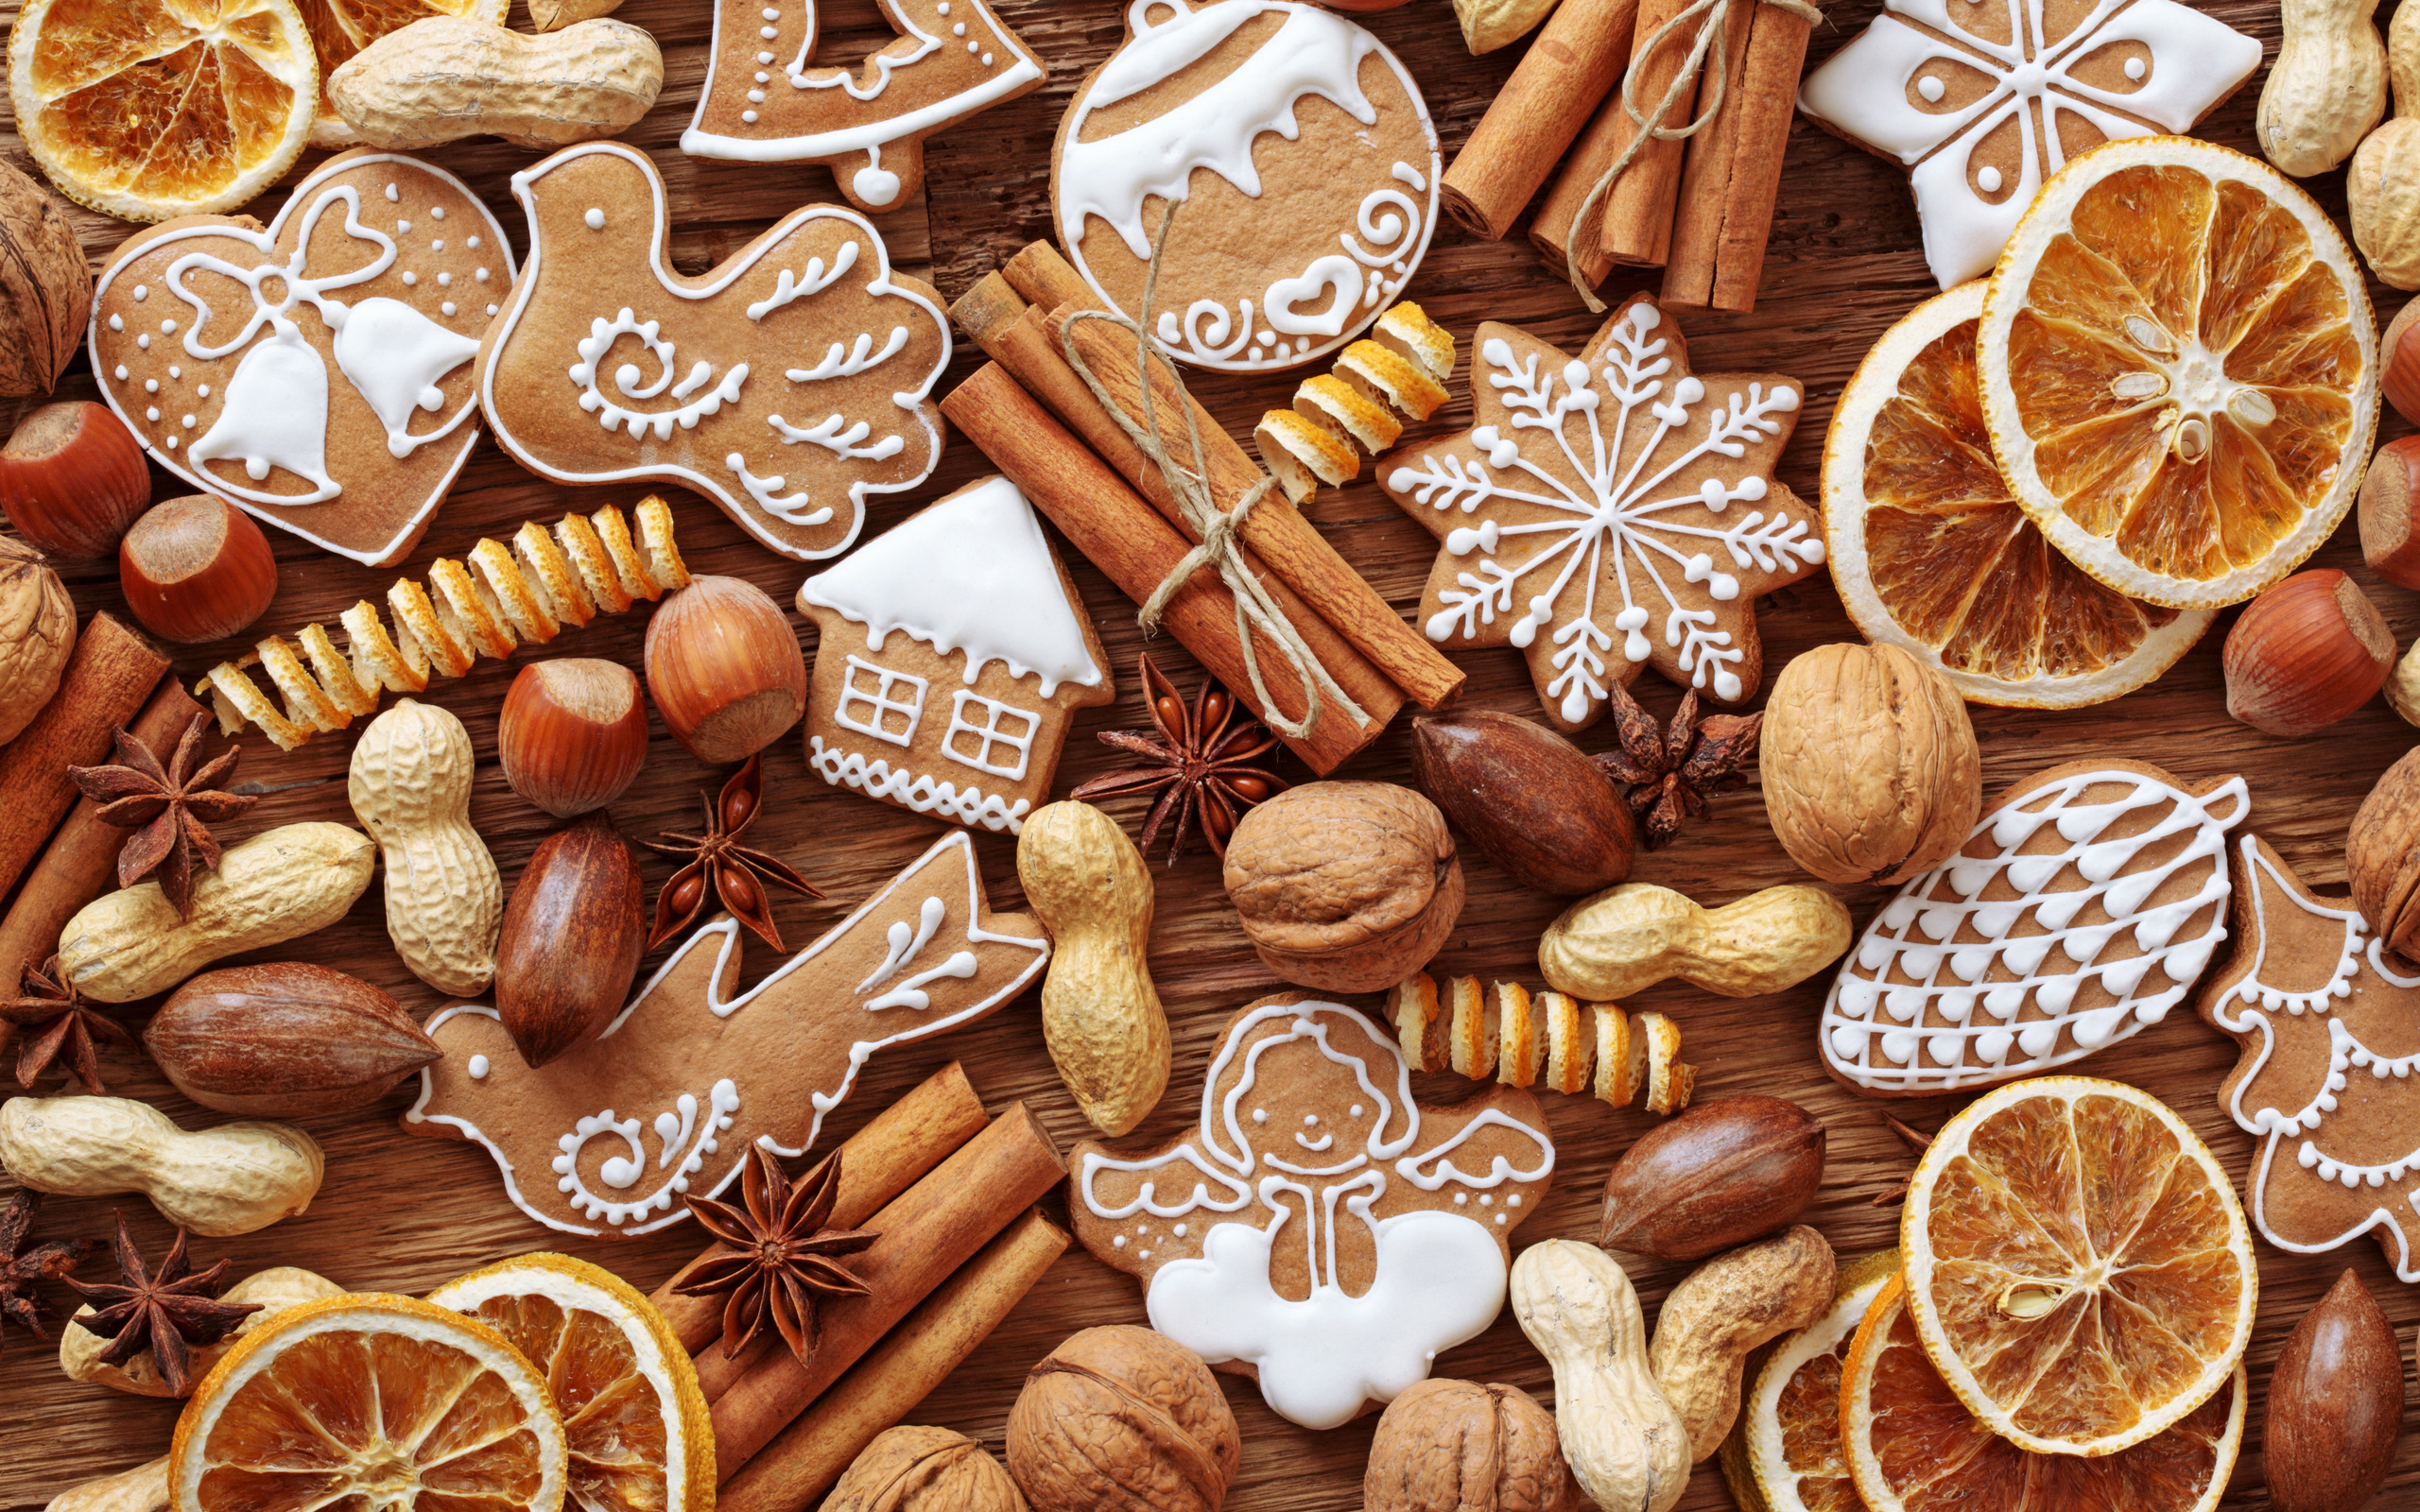 Awesome Pastries Wallpaper